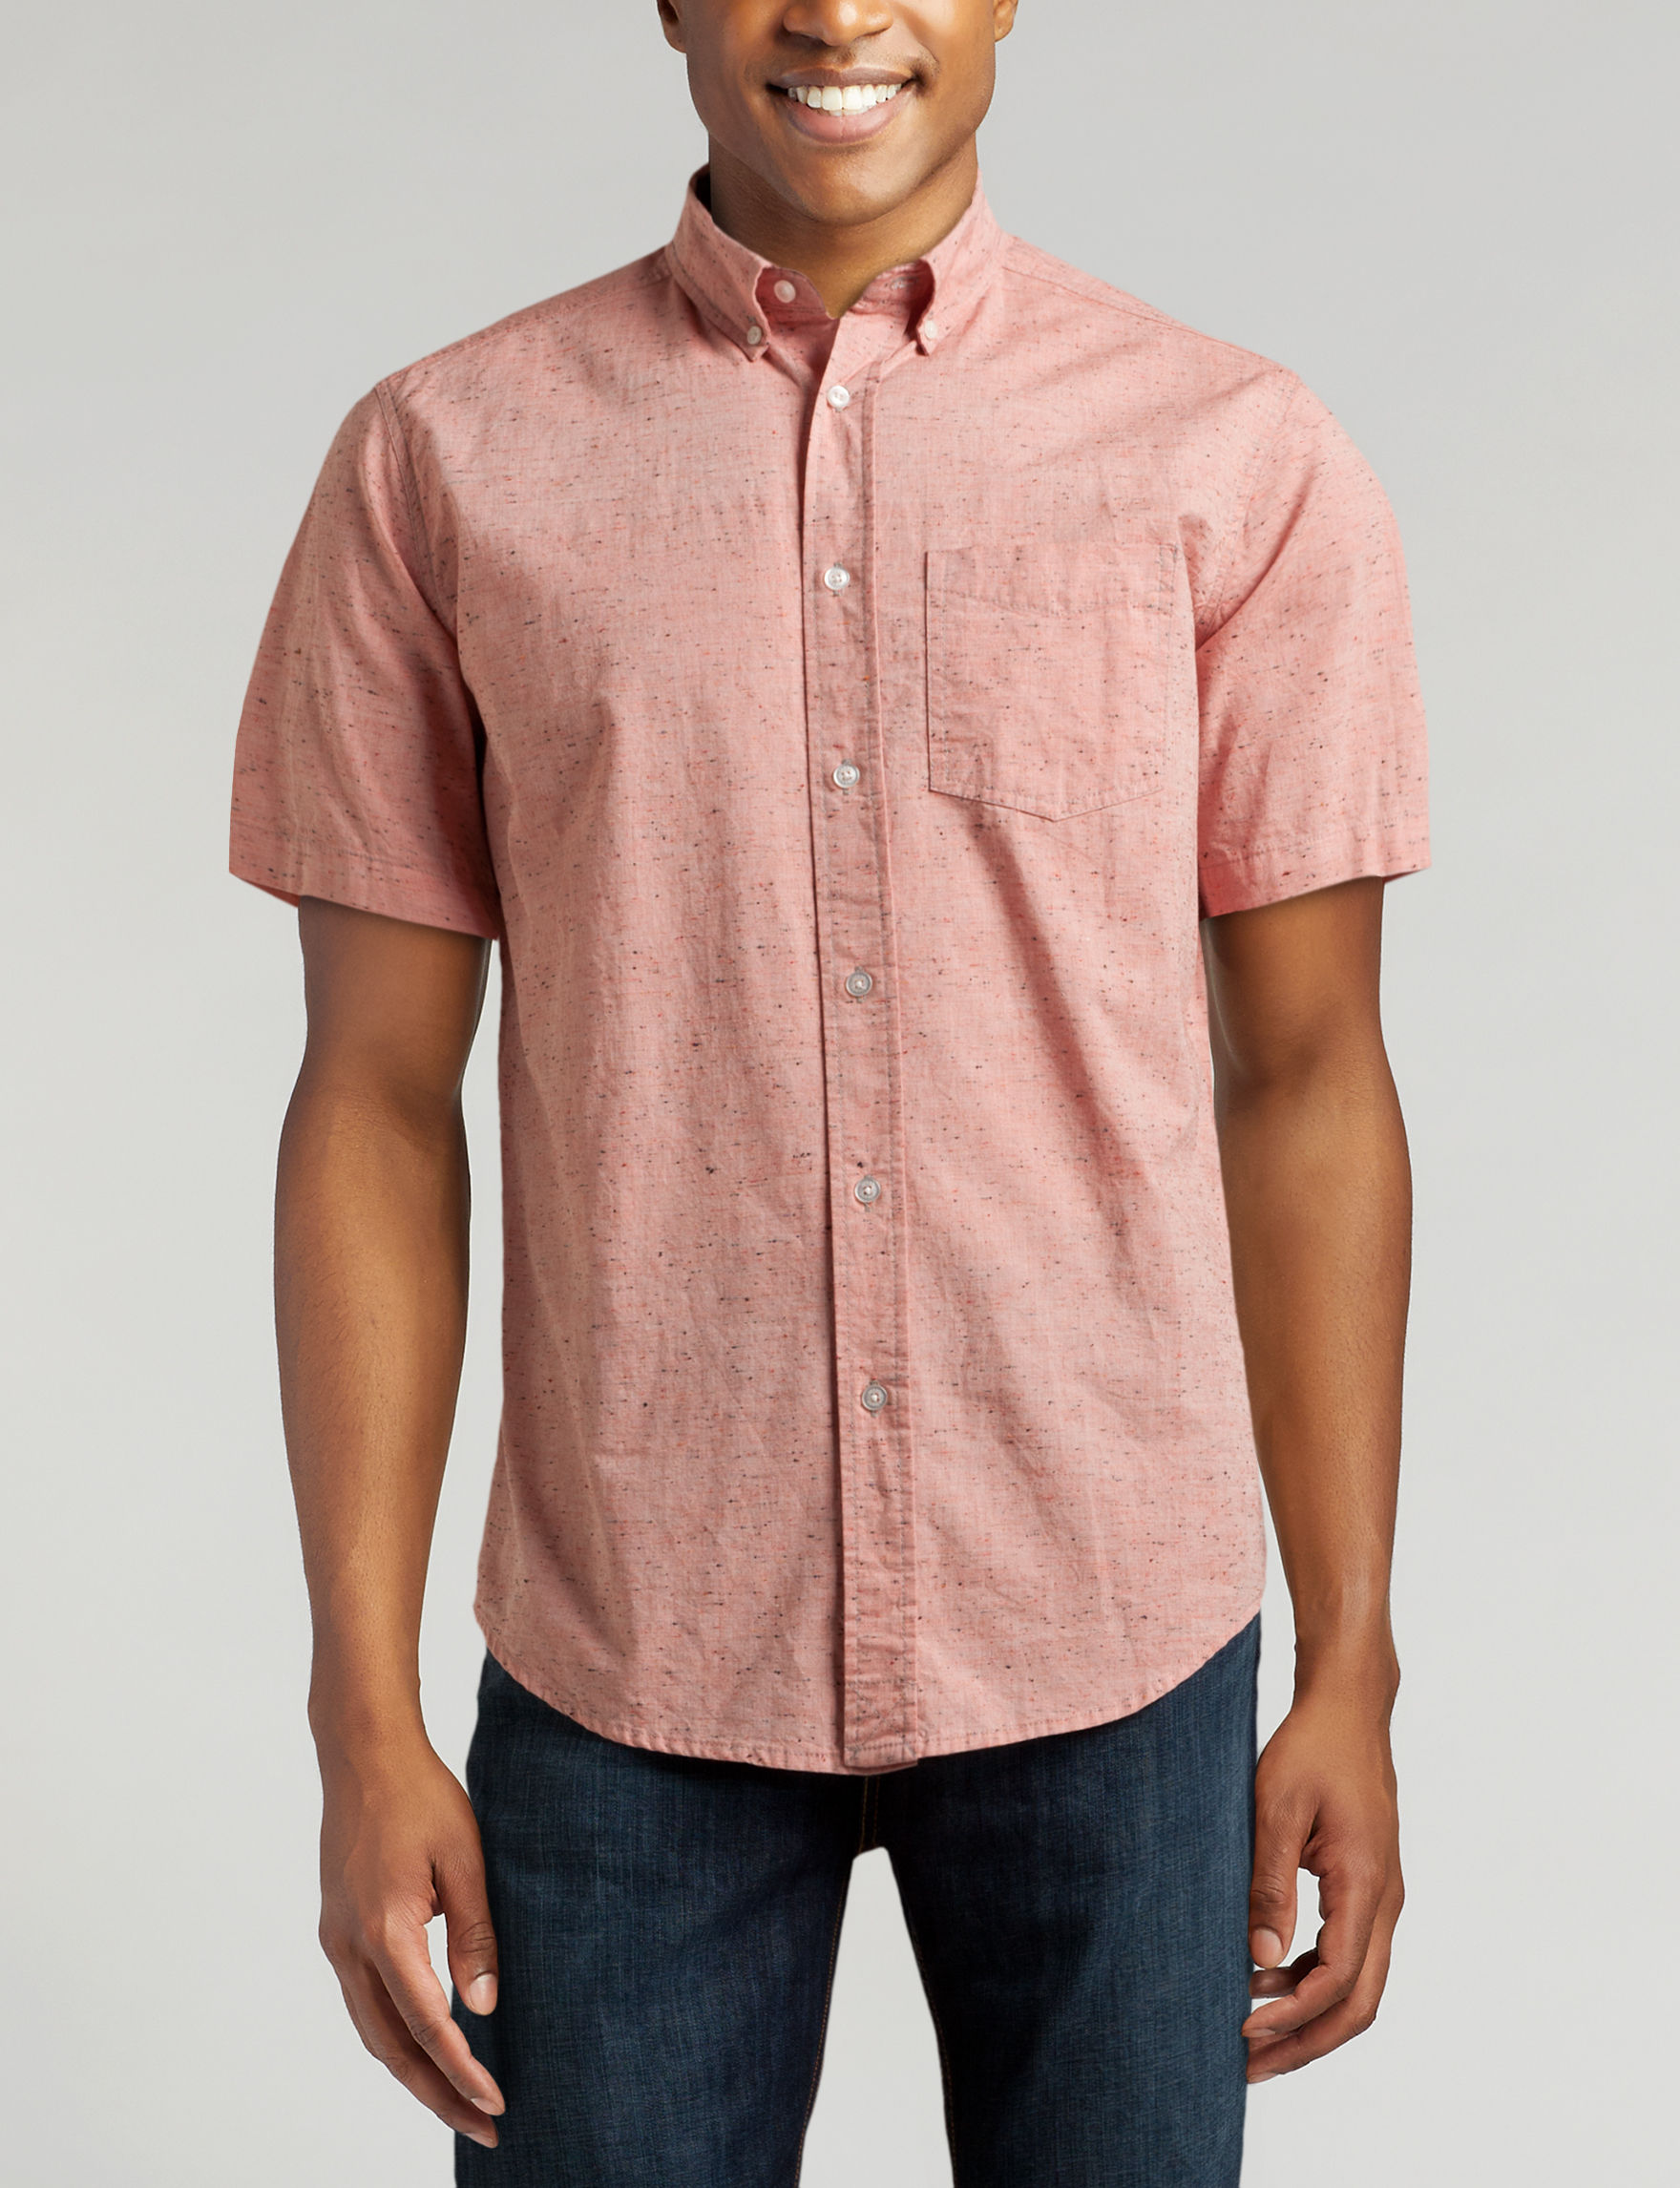 Ocean Current Heather Coral Casual Button Down Shirts